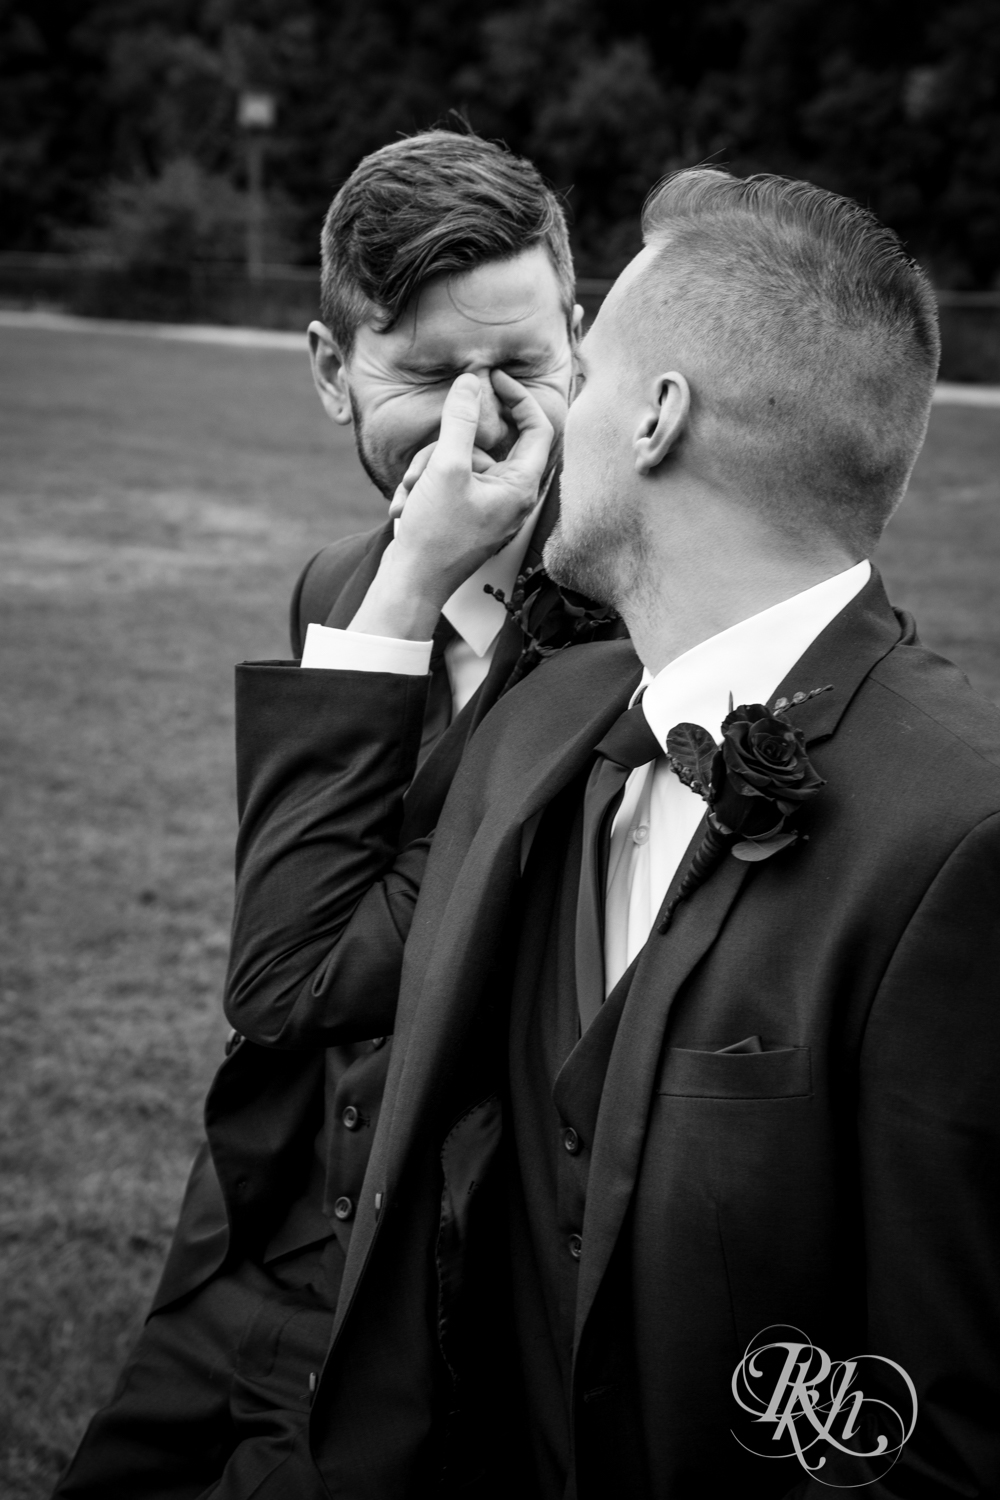 Michael & Darren - Minnesota LGBT Wedding Photography - Courtyard by Marriott Minneapolis - RKH Images - Blog (30 of 67).jpg